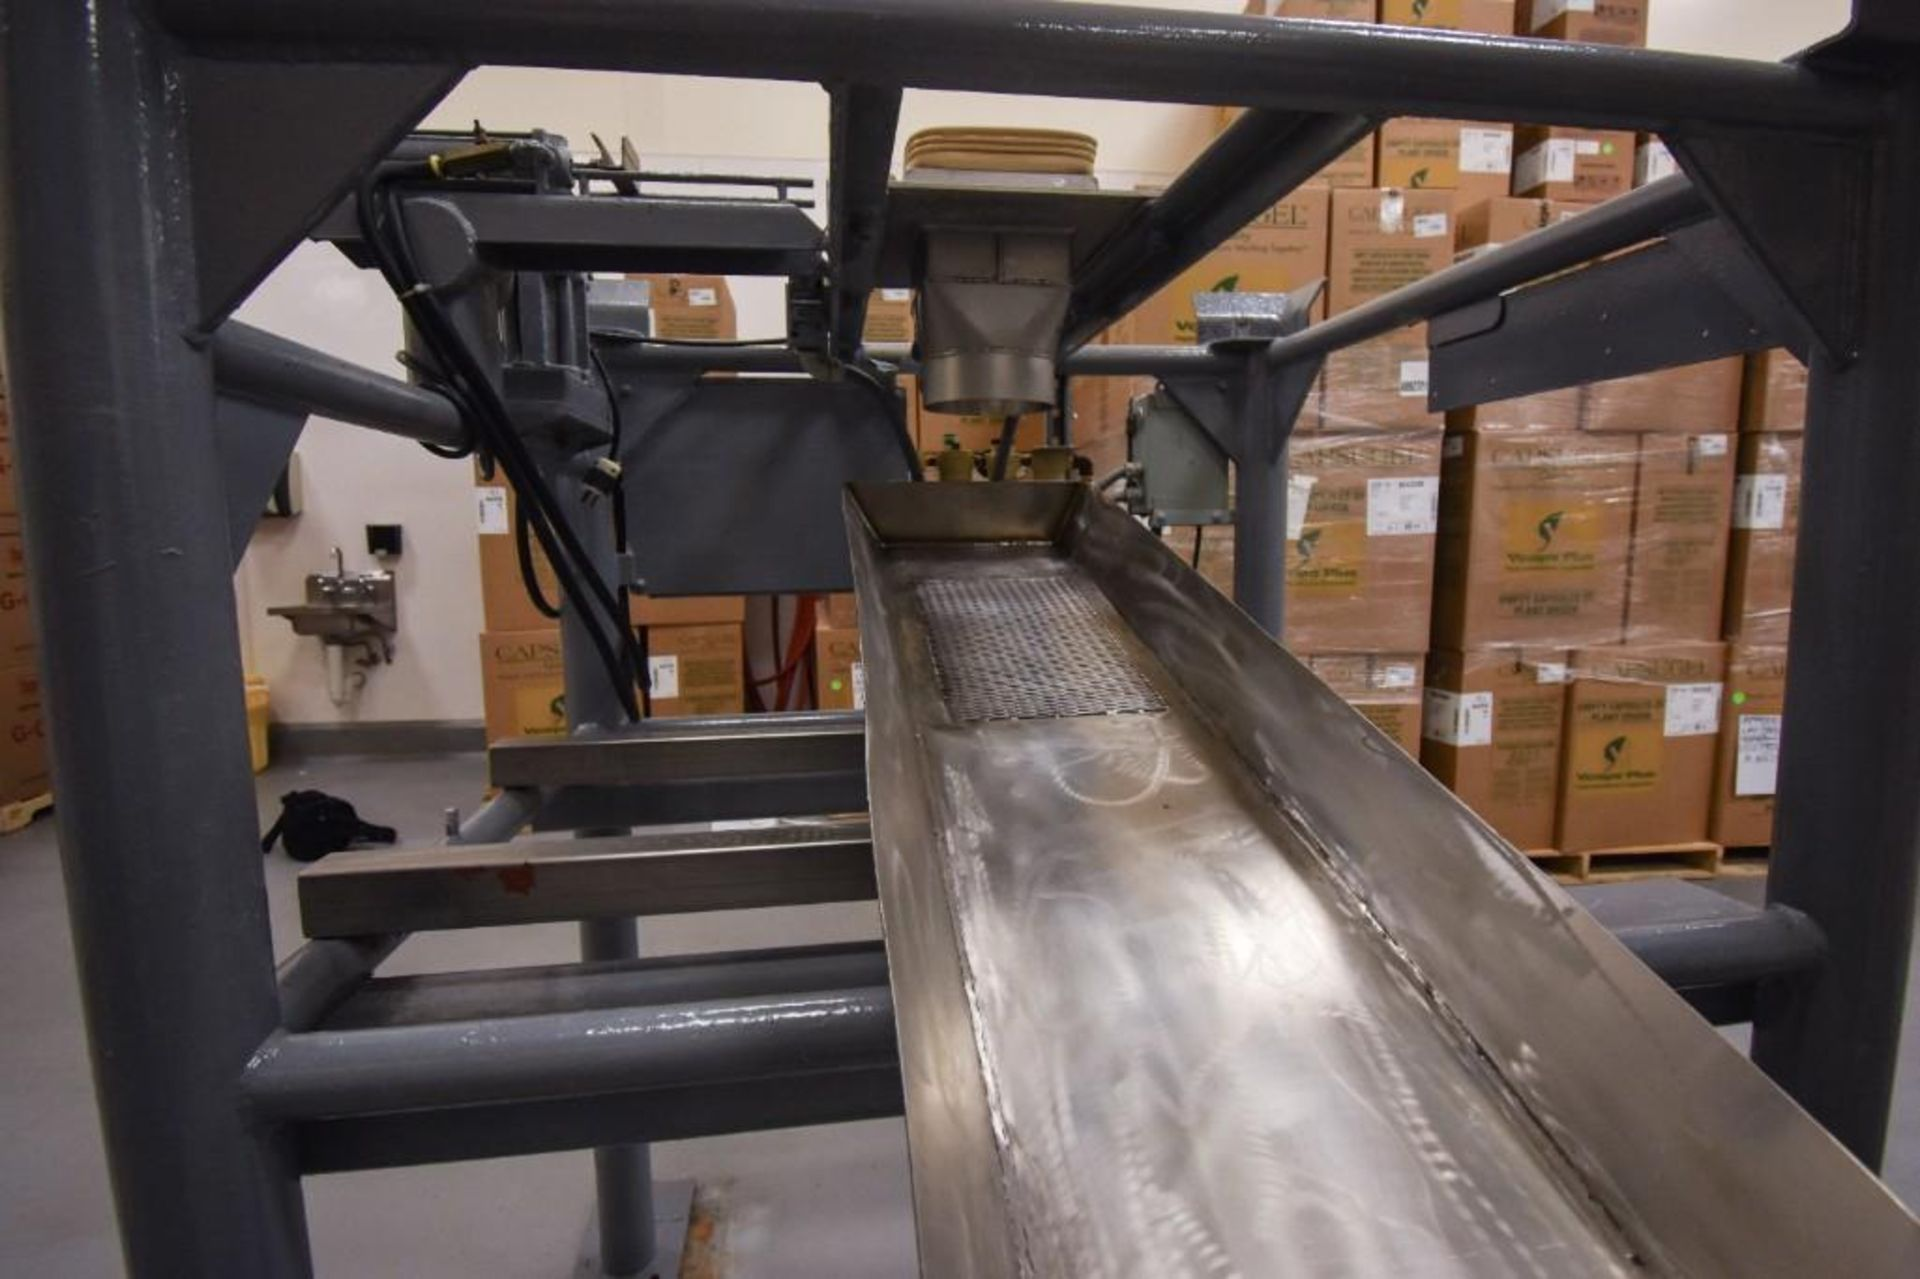 Vibratory Feeder For Totes - Image 5 of 7